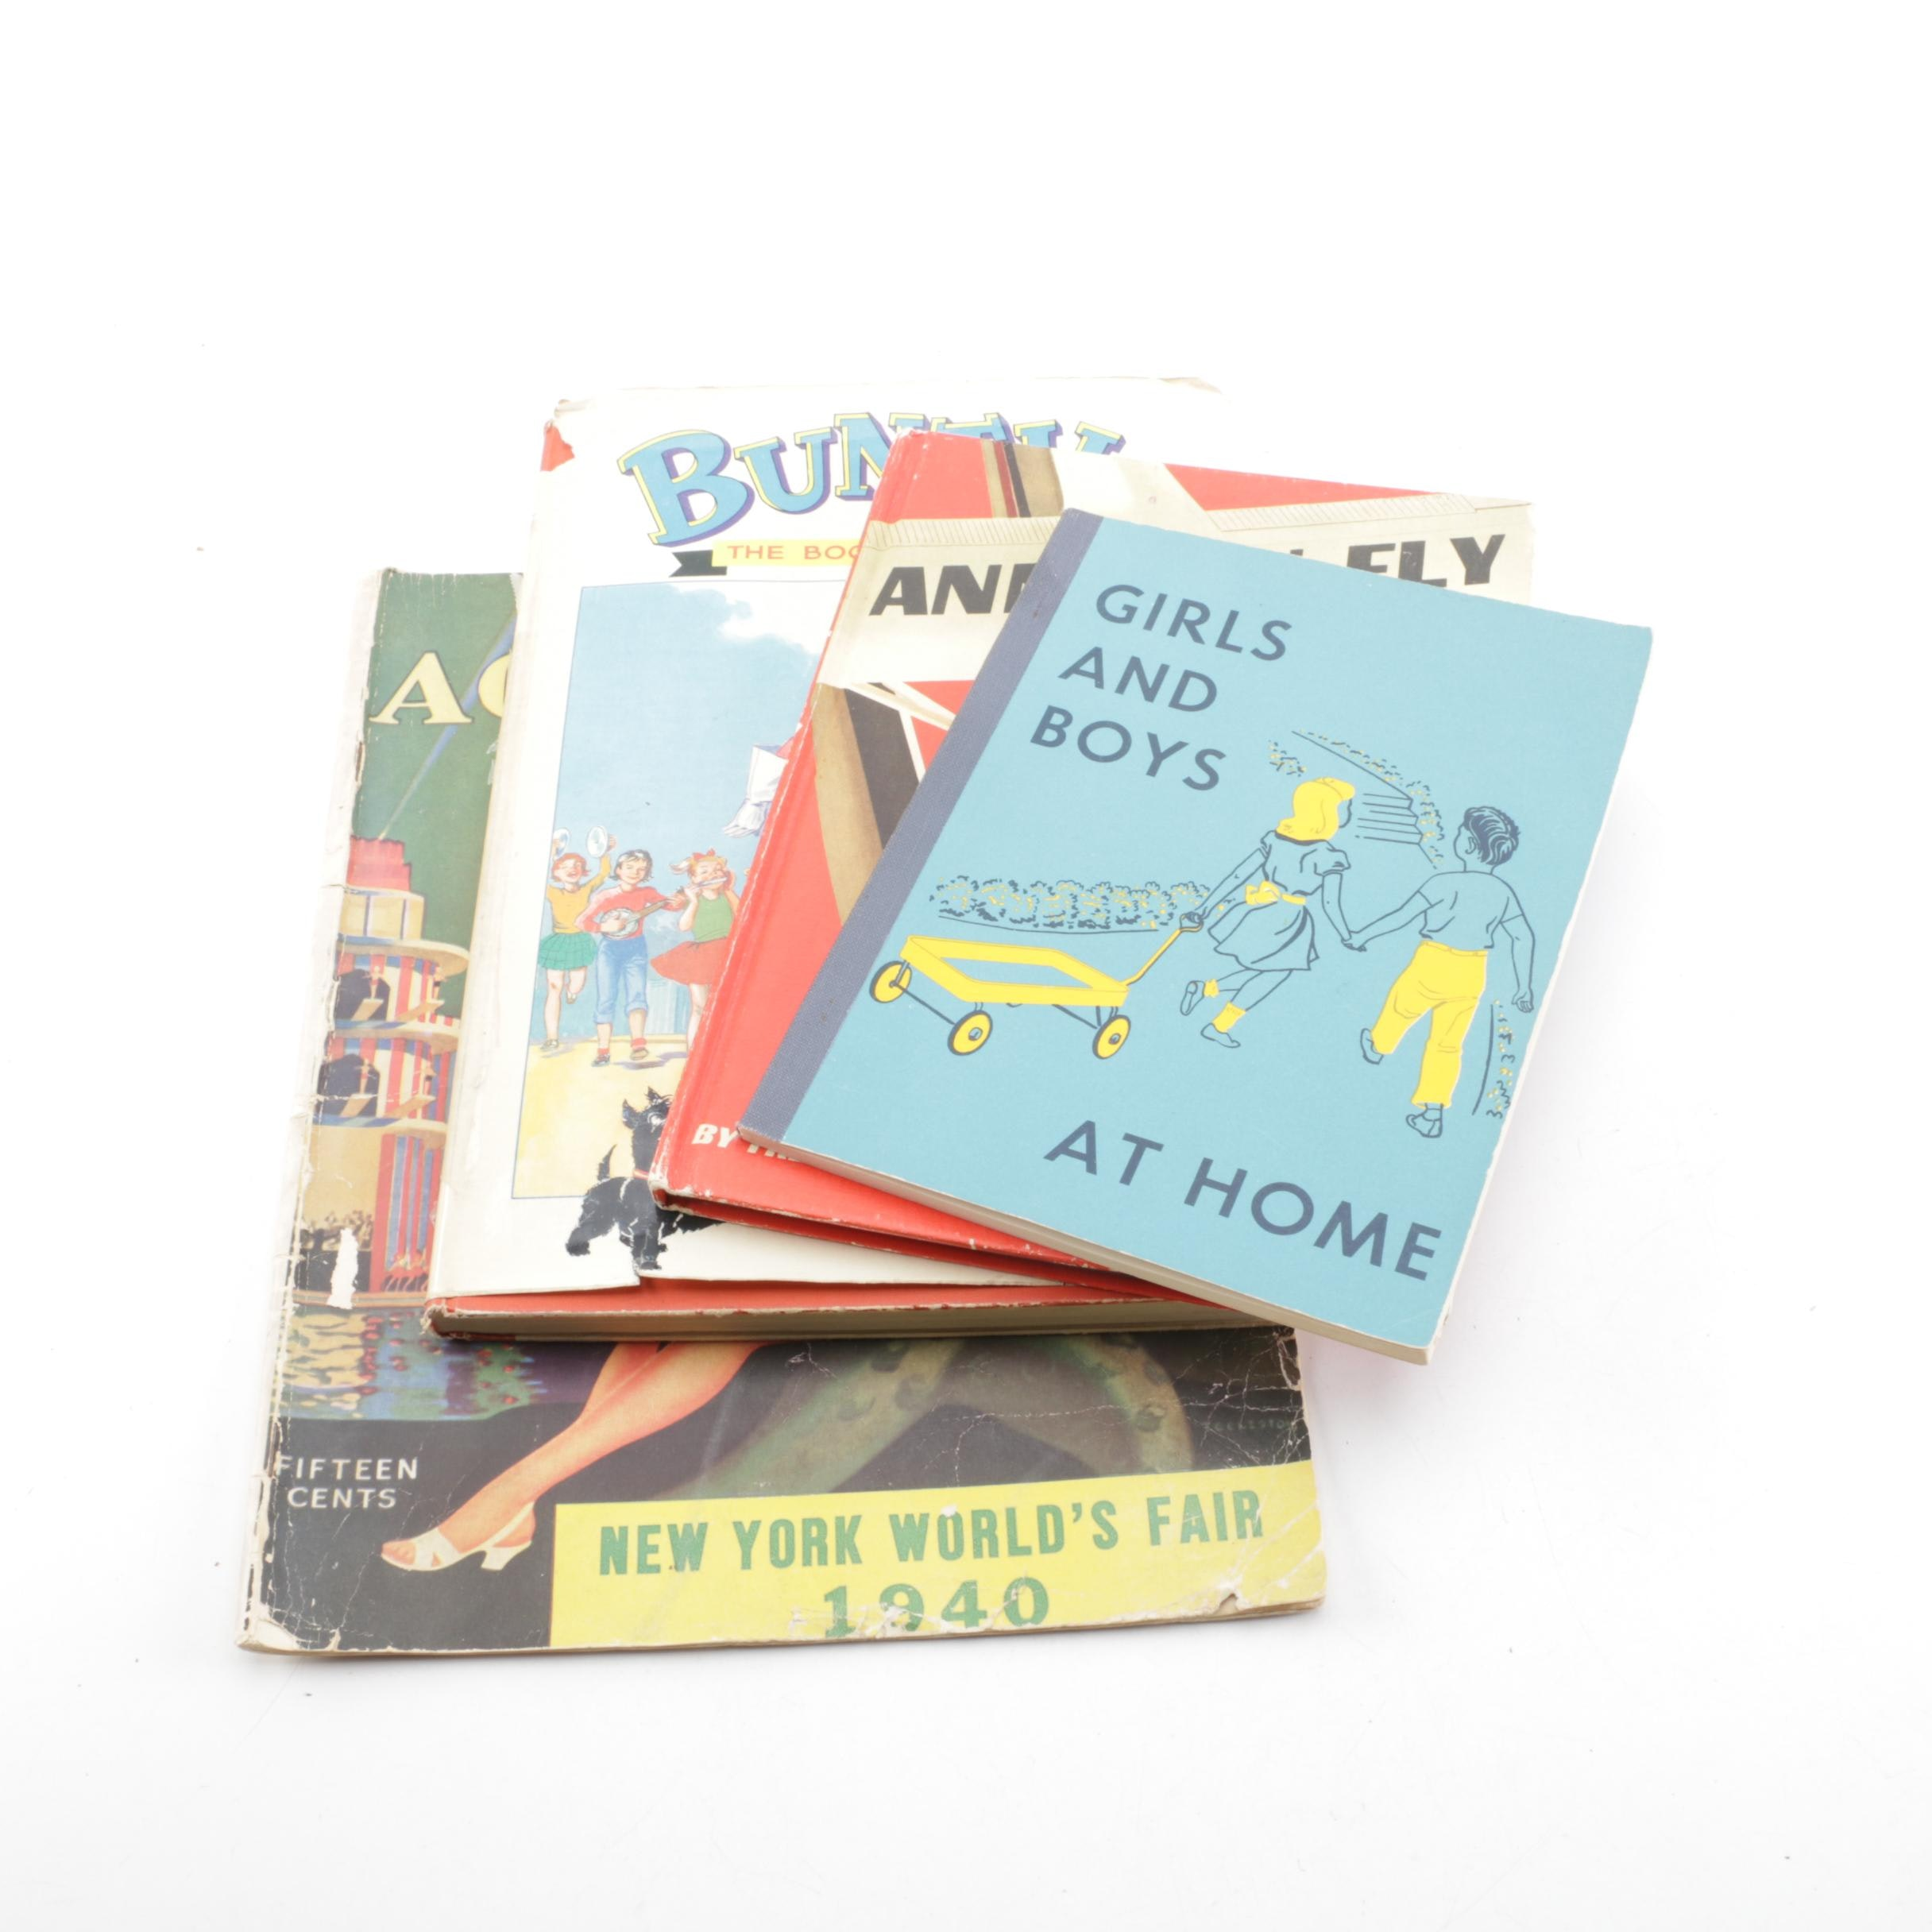 Mid-20th Century Children's Books and 1940 New York World's Fair Pamphlet